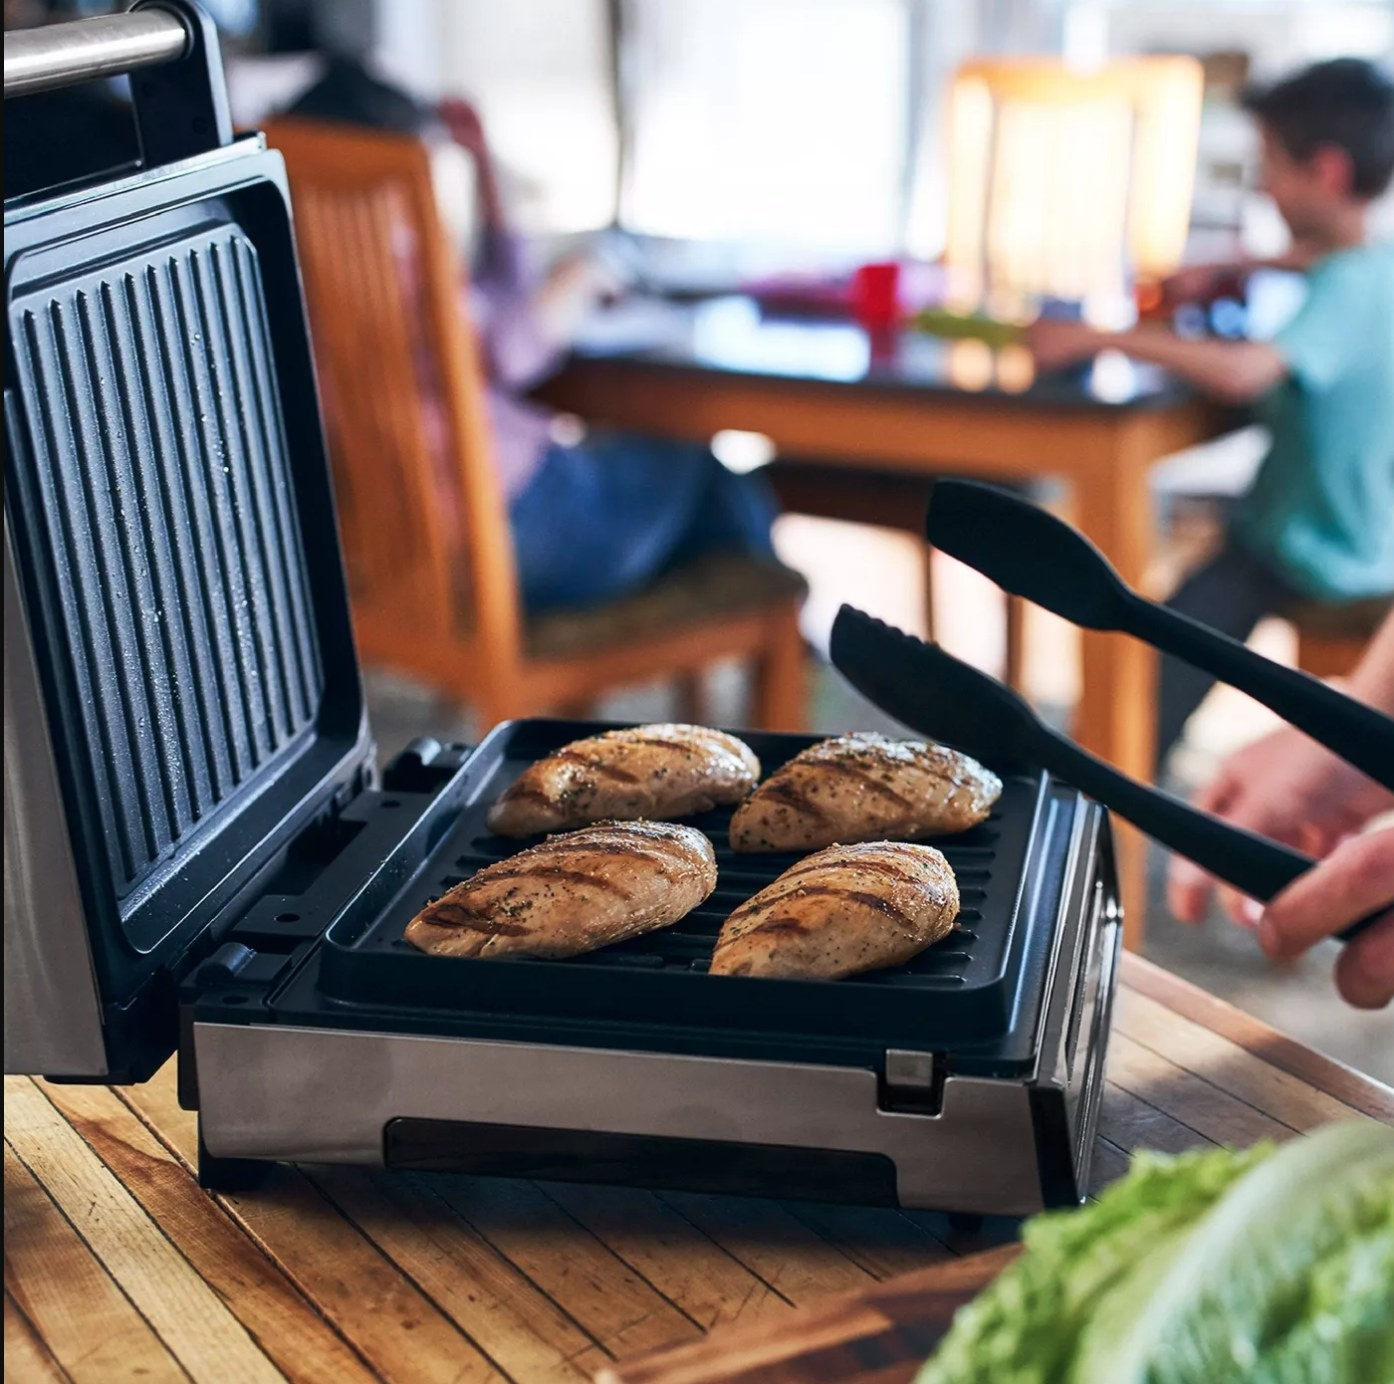 The smokeless George Foreman grill in black and stainless steel